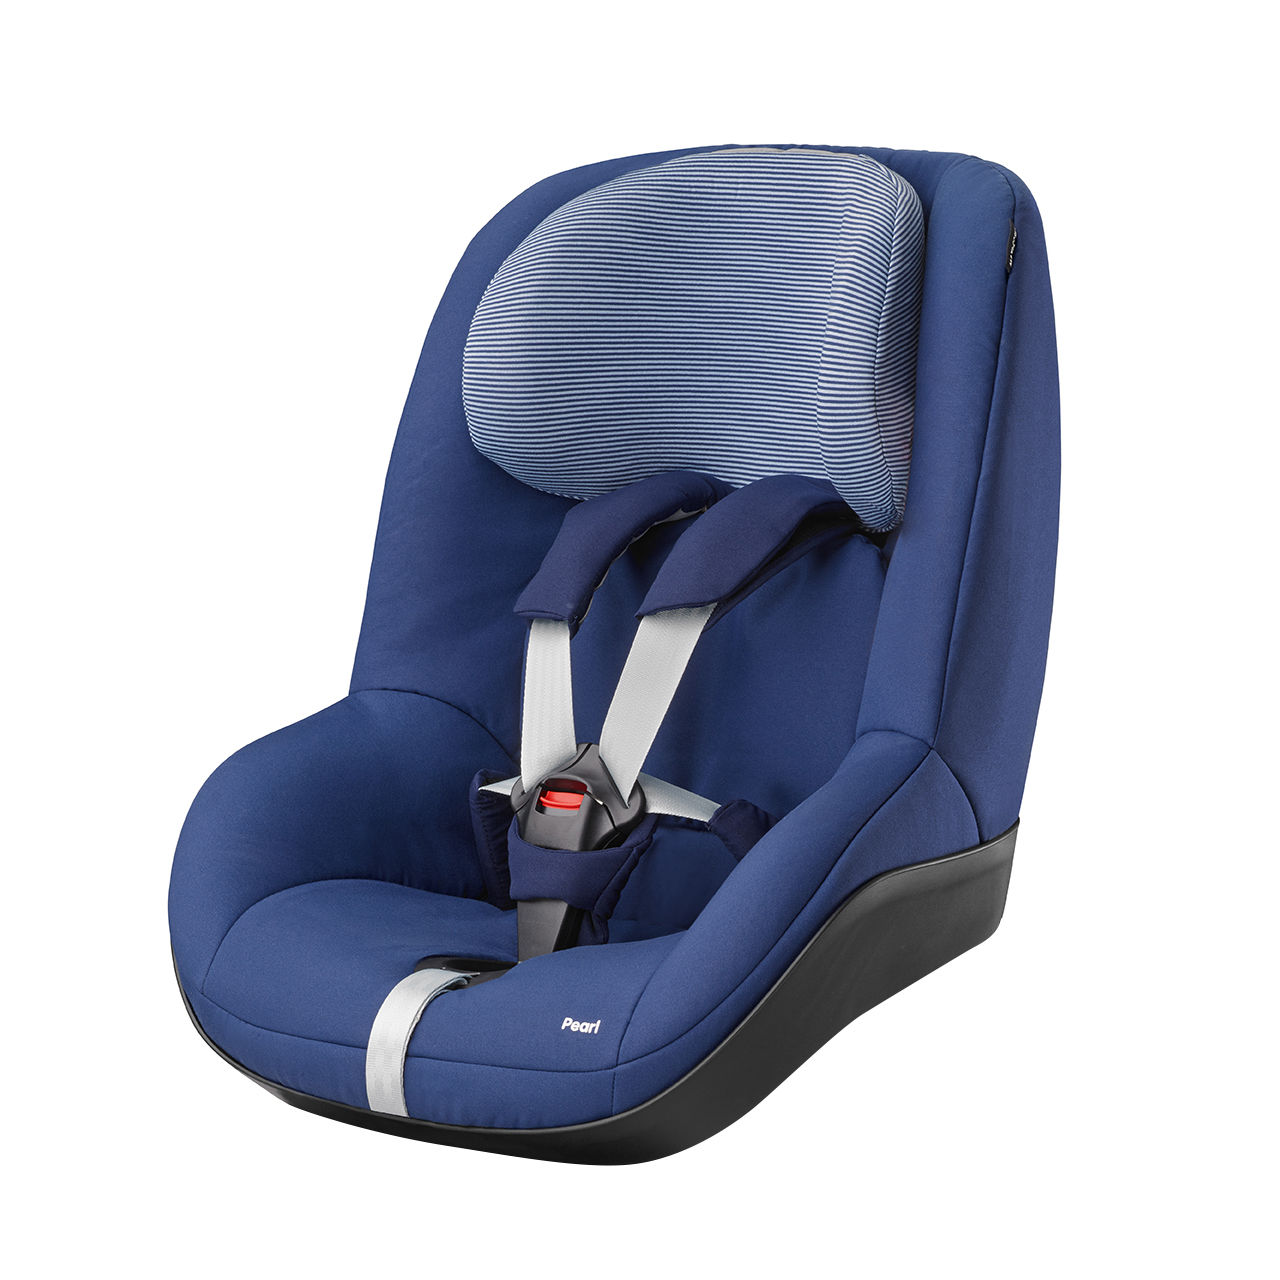 Maxi cosi child car seat pearl 2016 river blue buy online for Maxi cosi housse